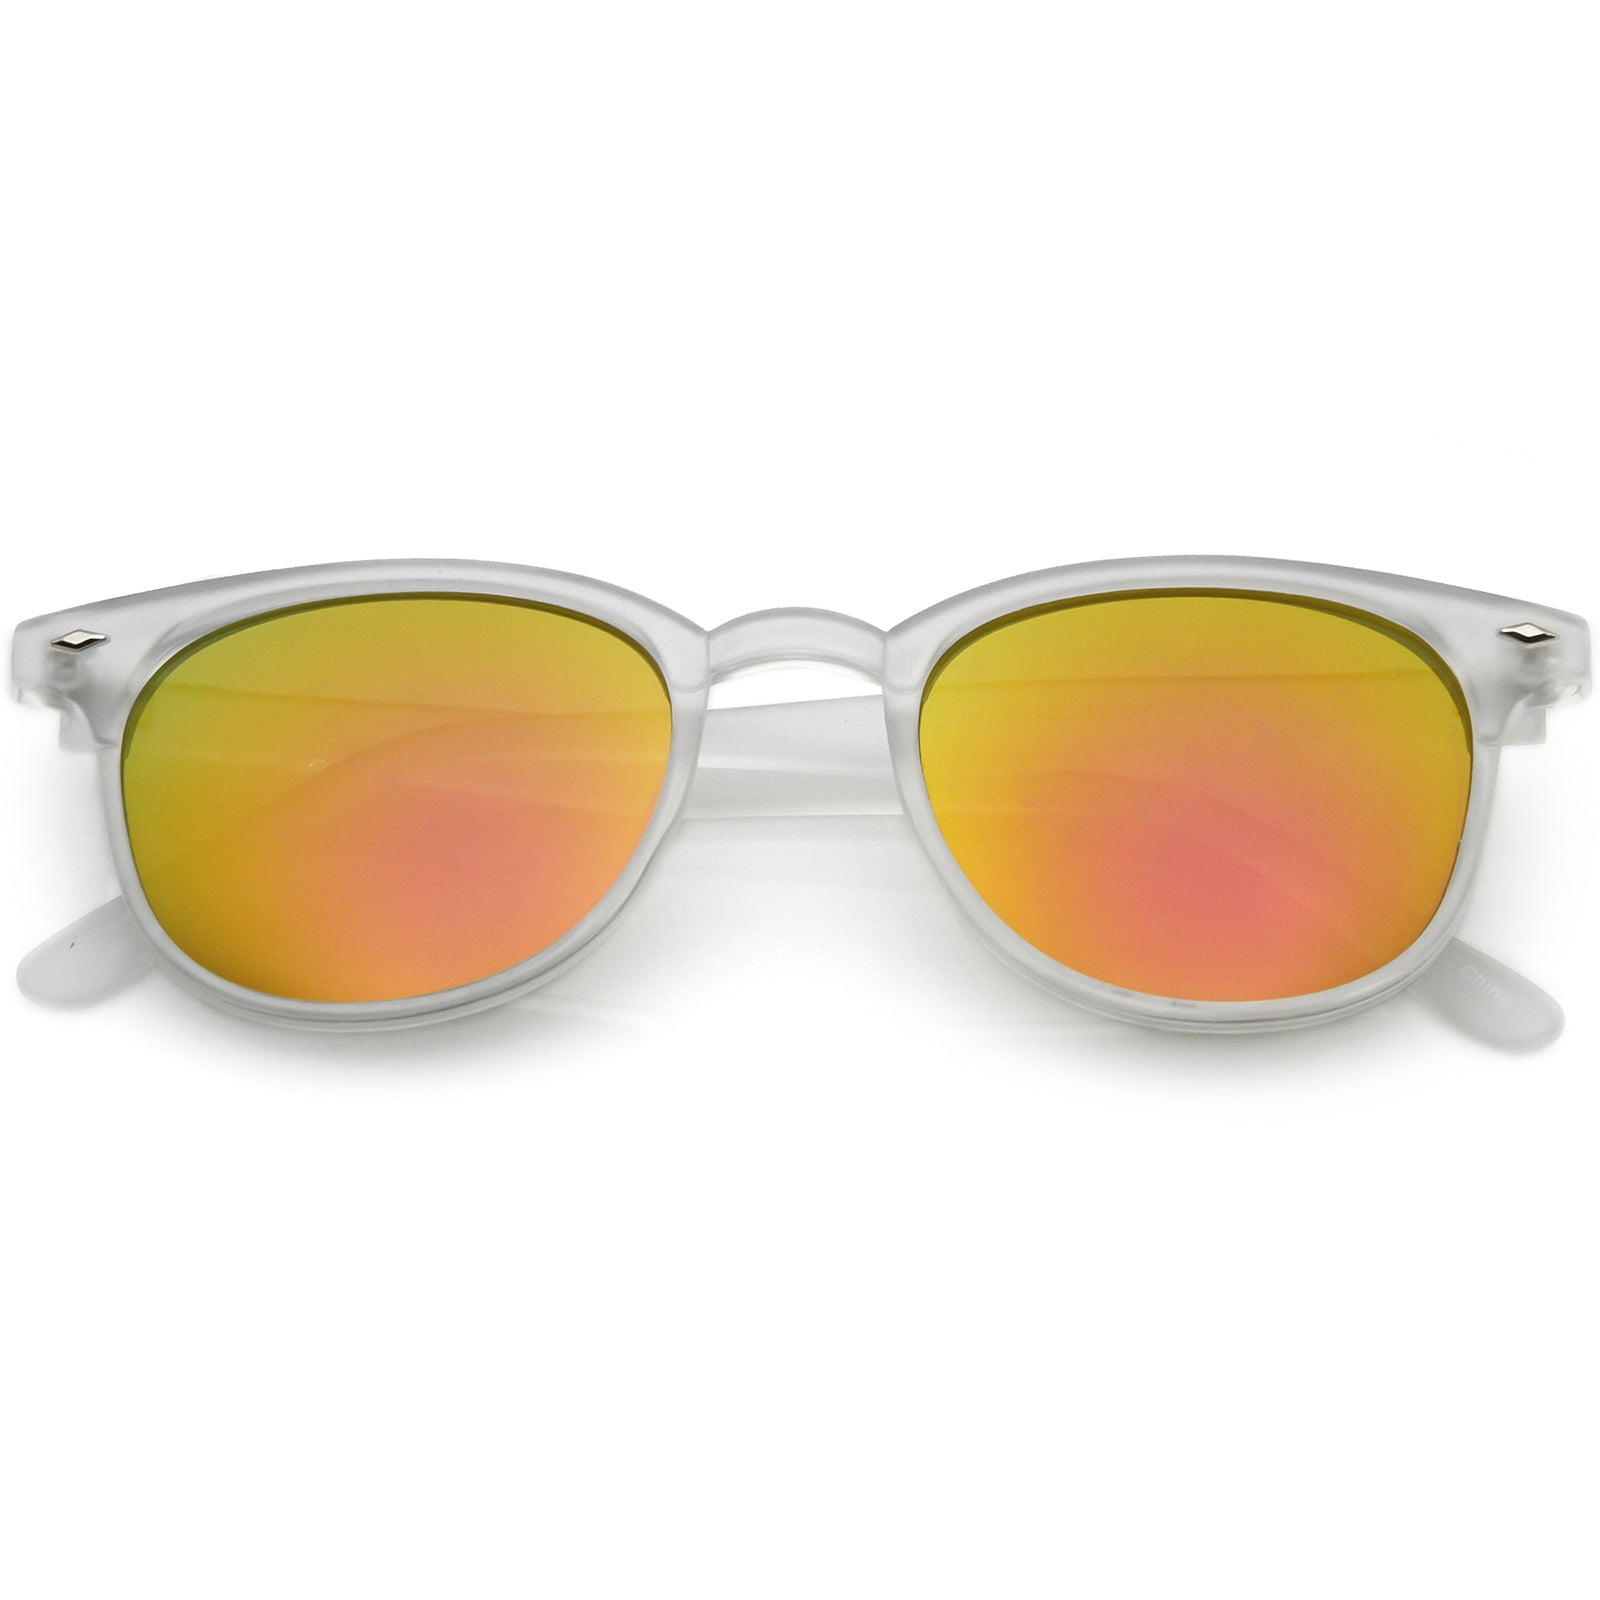 16ee3088f1 Oversize Horn Rimmed Sunglasses Wide Arms Neutral Colored Square Lens 56mm